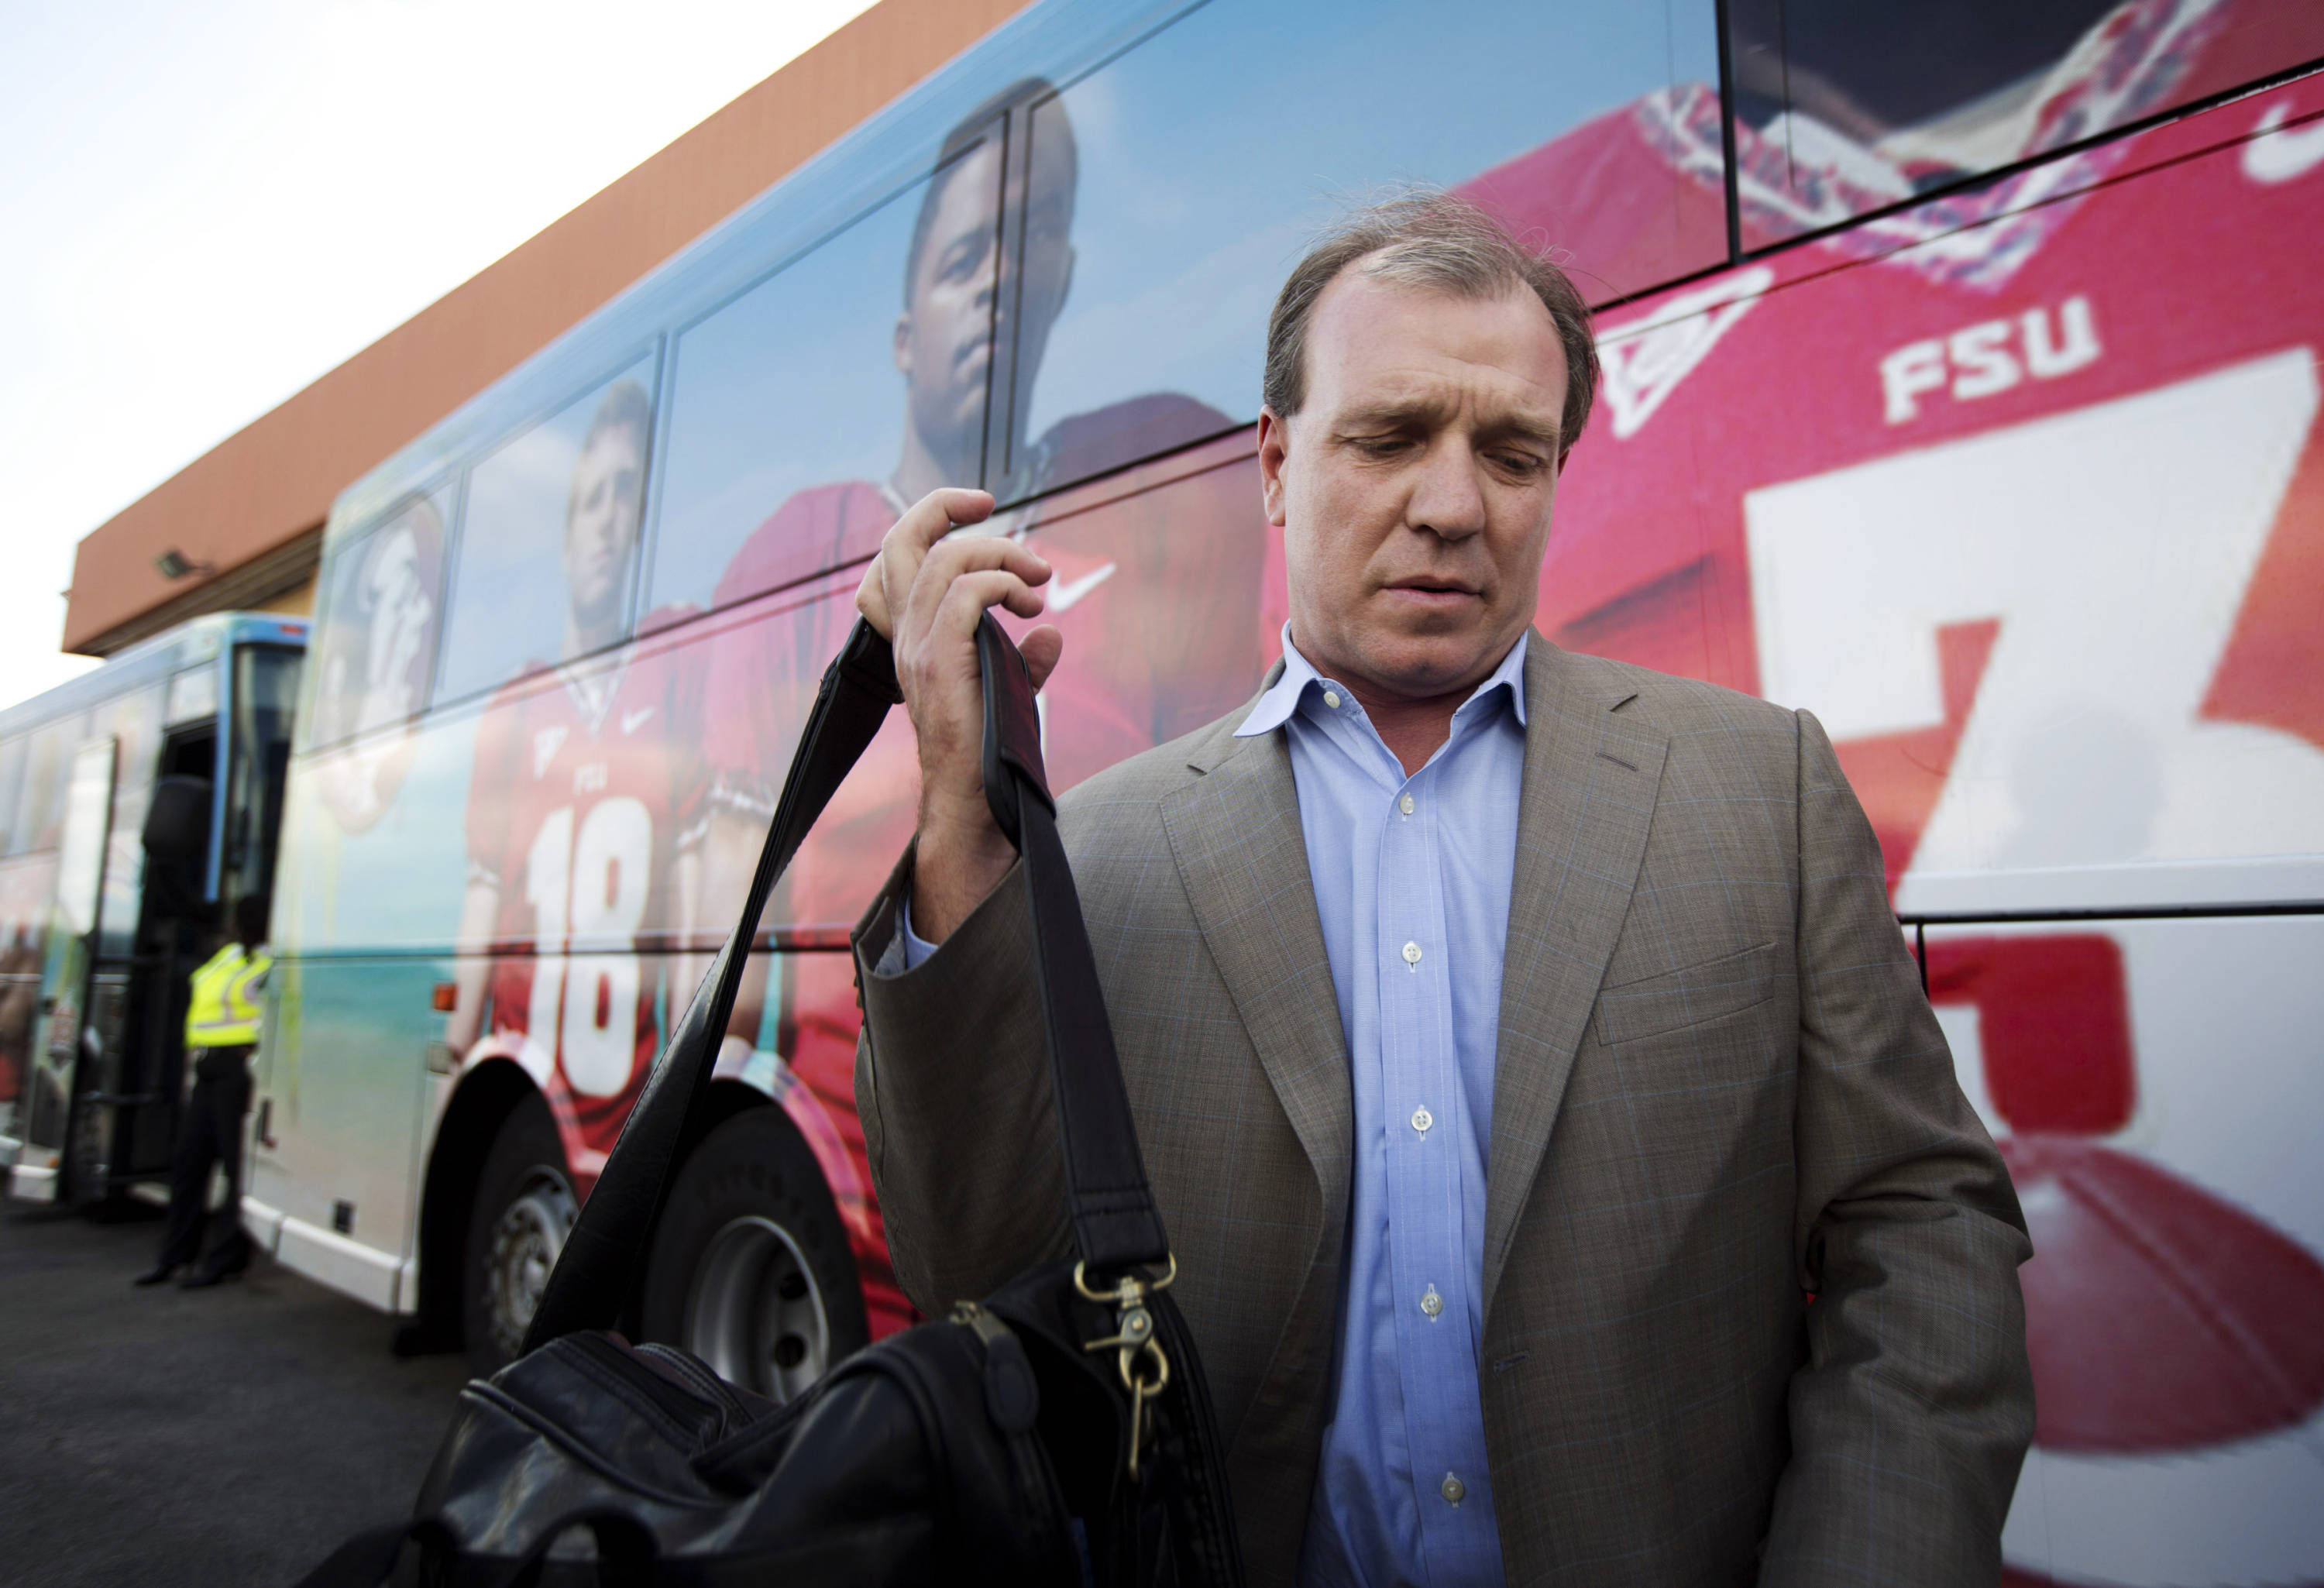 Florida State head coach Jimbo Fisher prepares to load onto a team bus, Wednesday, Dec. 26, 2012, after his team arrived in Fort Lauderdale, Fla. Florida State is scheduled to play Northern Illinois in the in the Orange Bowl NCAA college football game on Tuesday, Jan. 1, 2013, in Miami. (AP Photo/J Pat Carter)